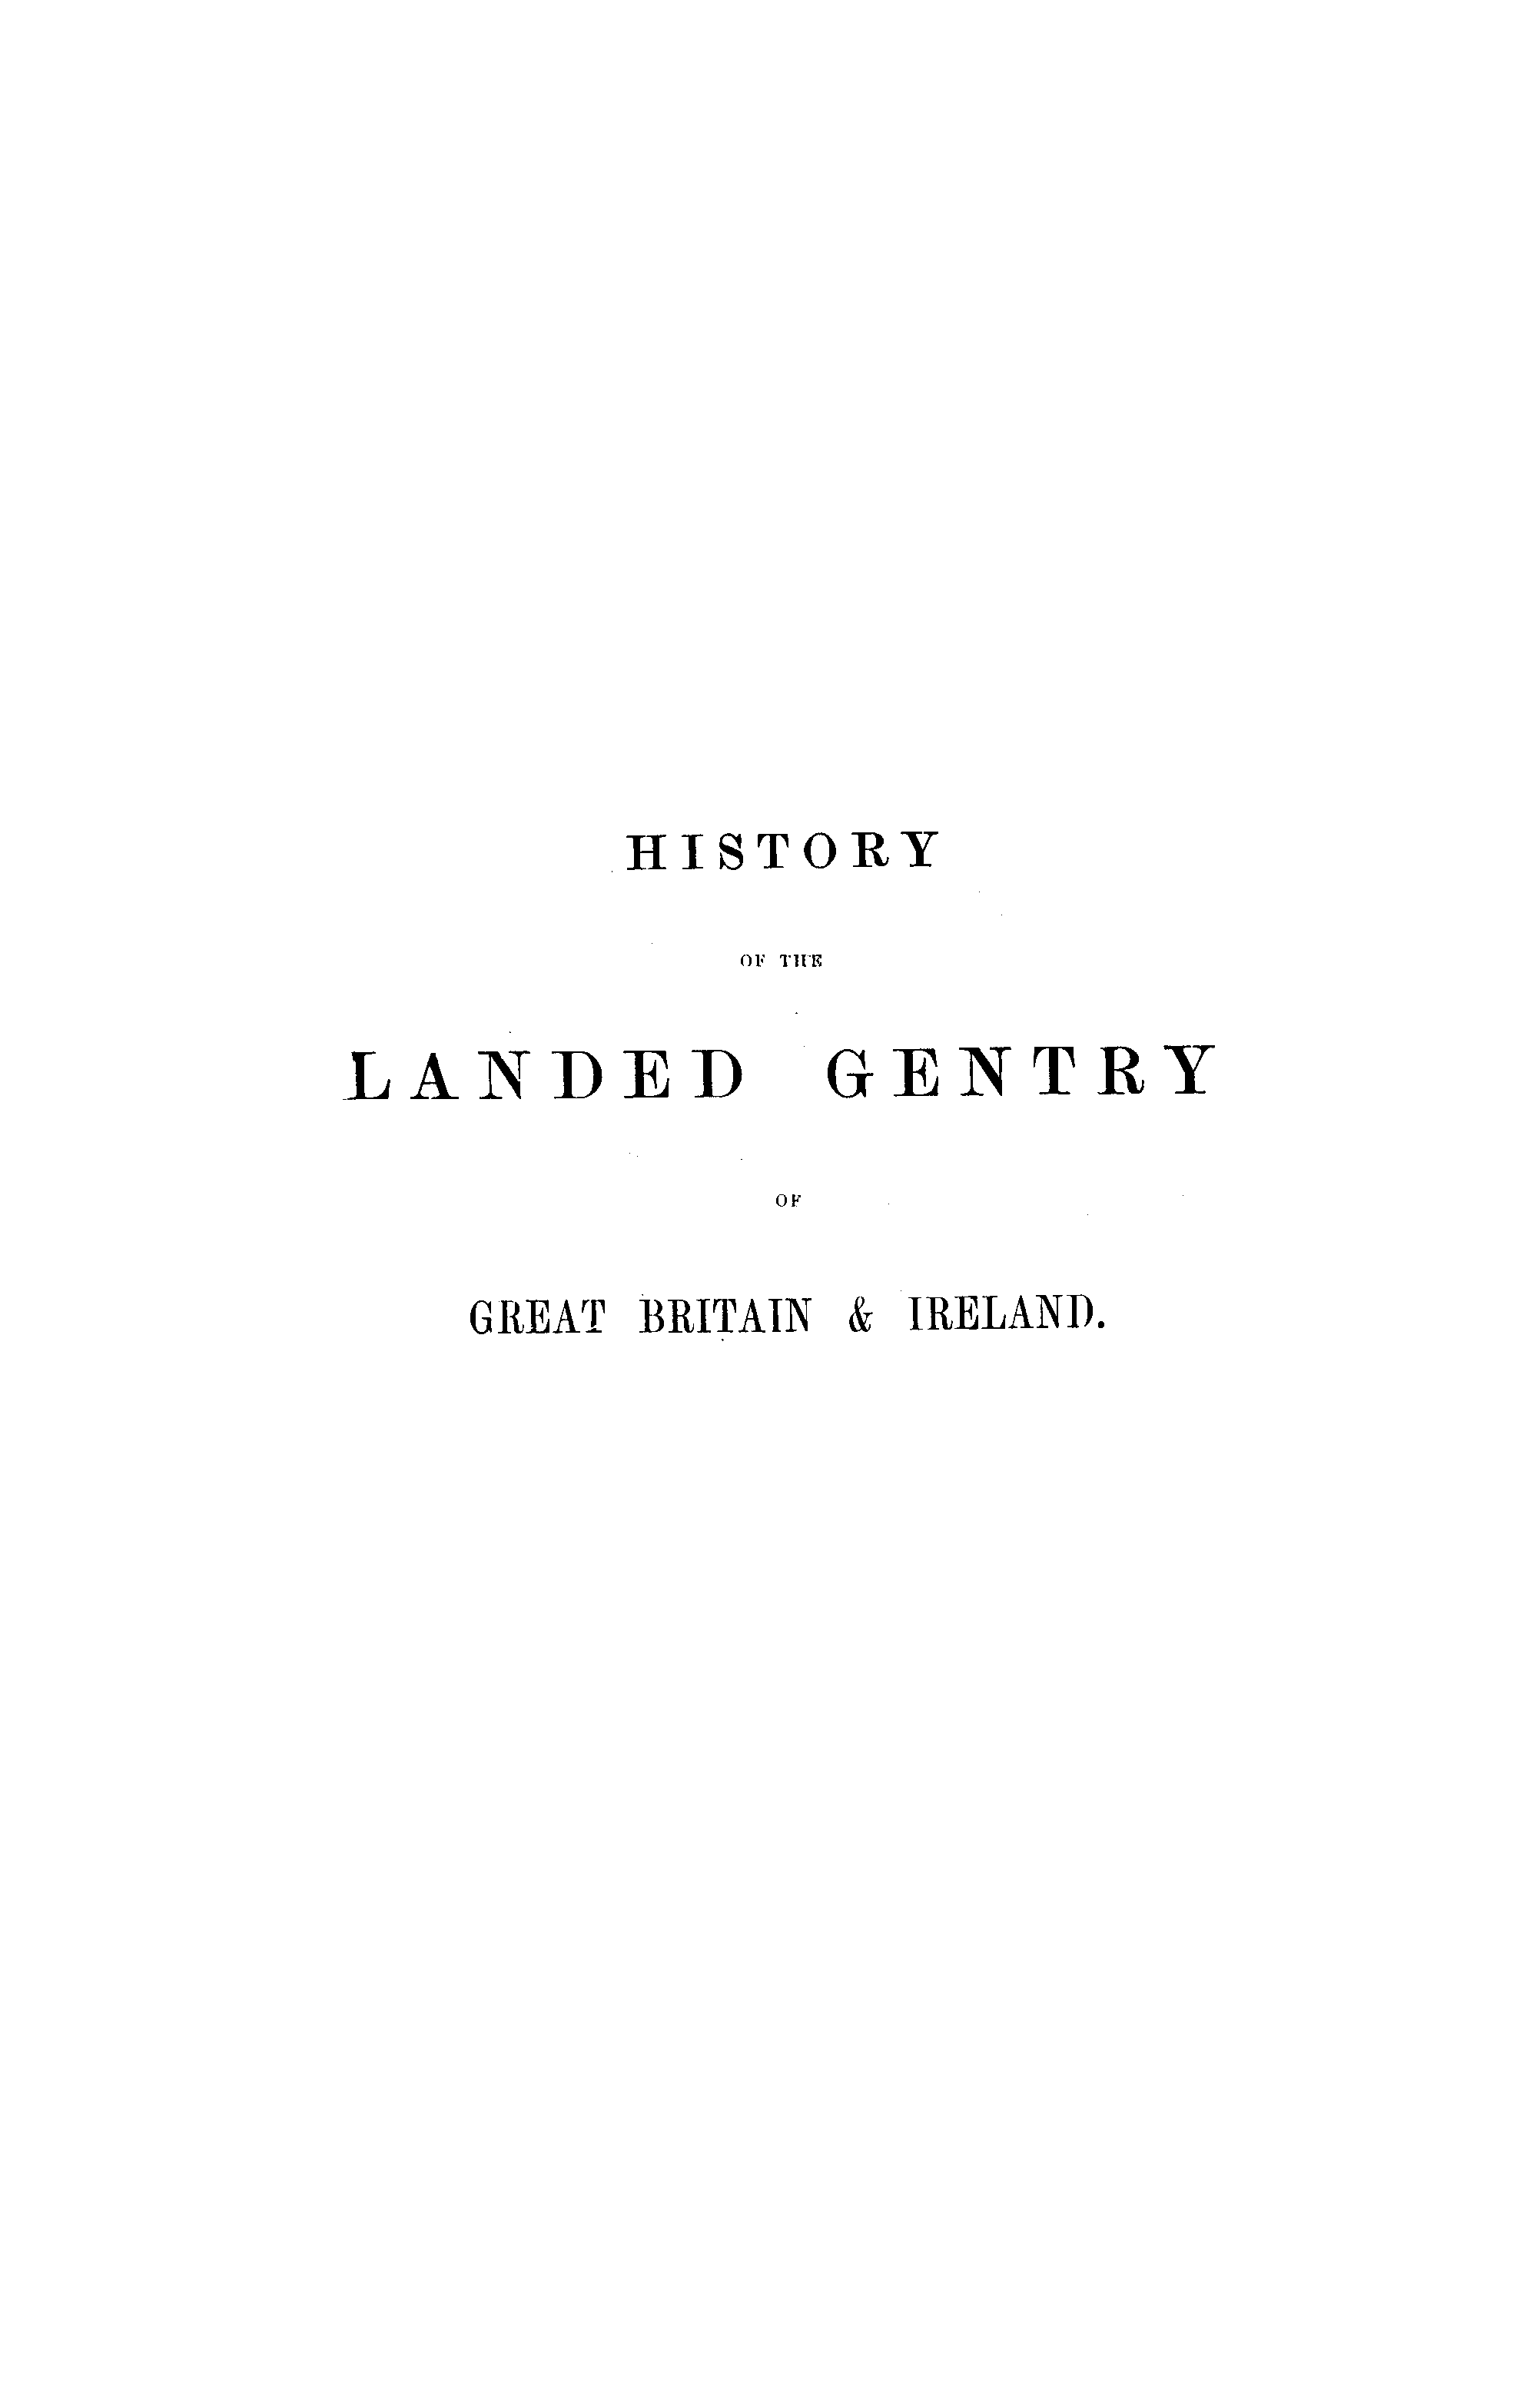 Burke's Landed Gentry, 1898 page i - click to open larger version in a new window